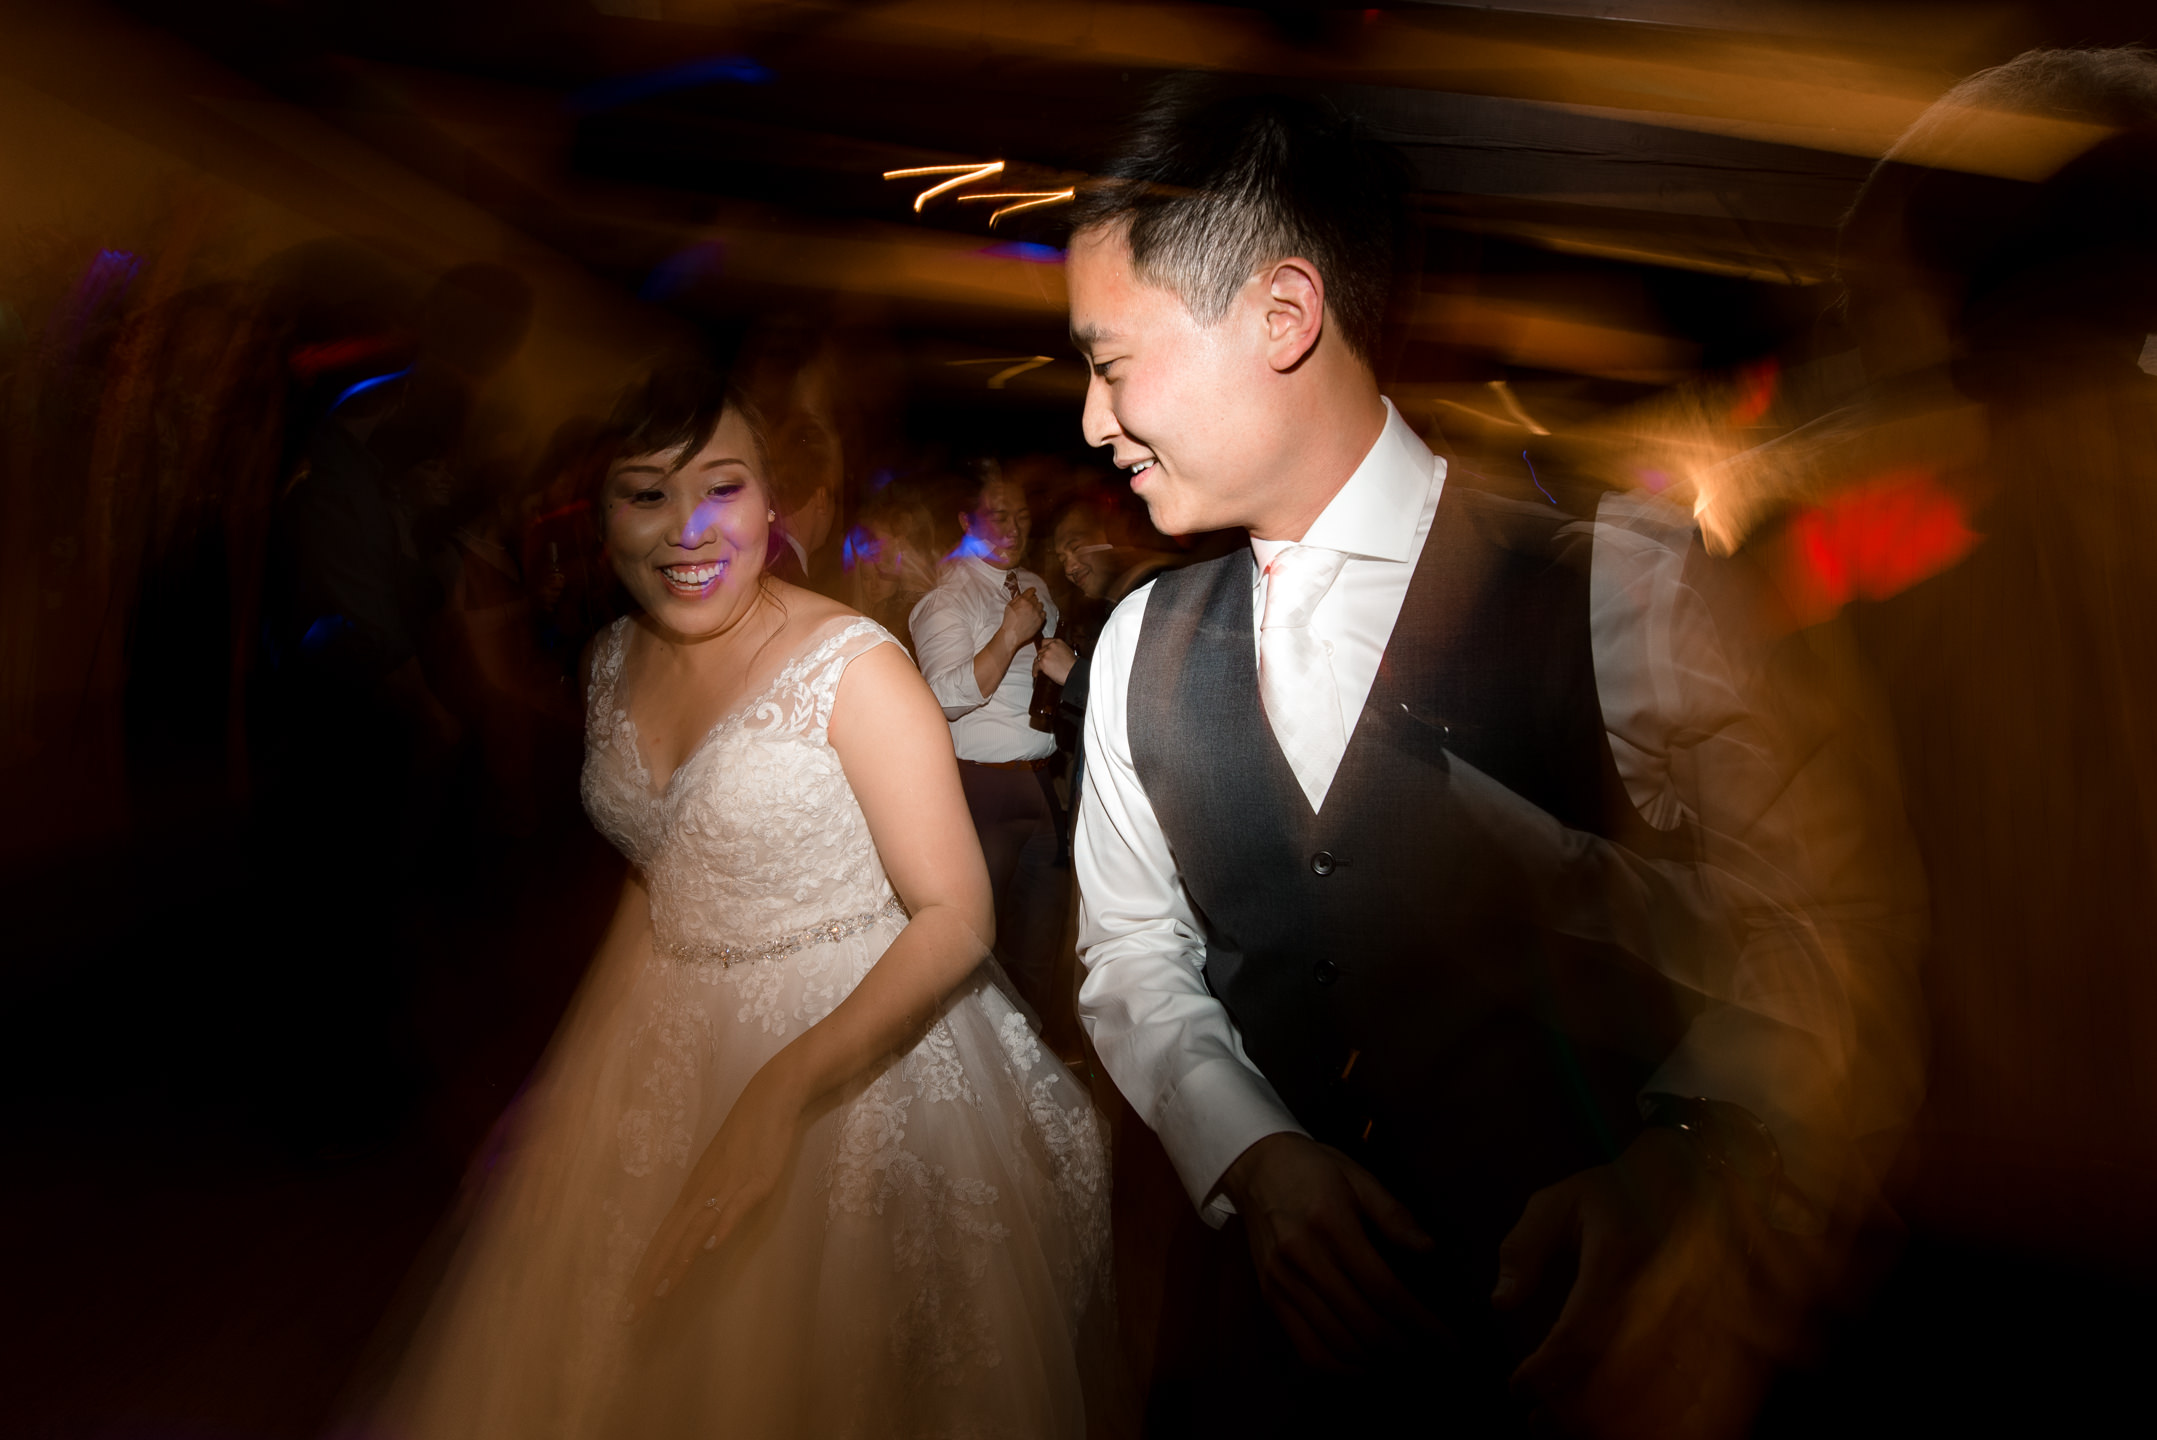 Asian Bride Groom Dancing during Wedding Reception at Villa Park